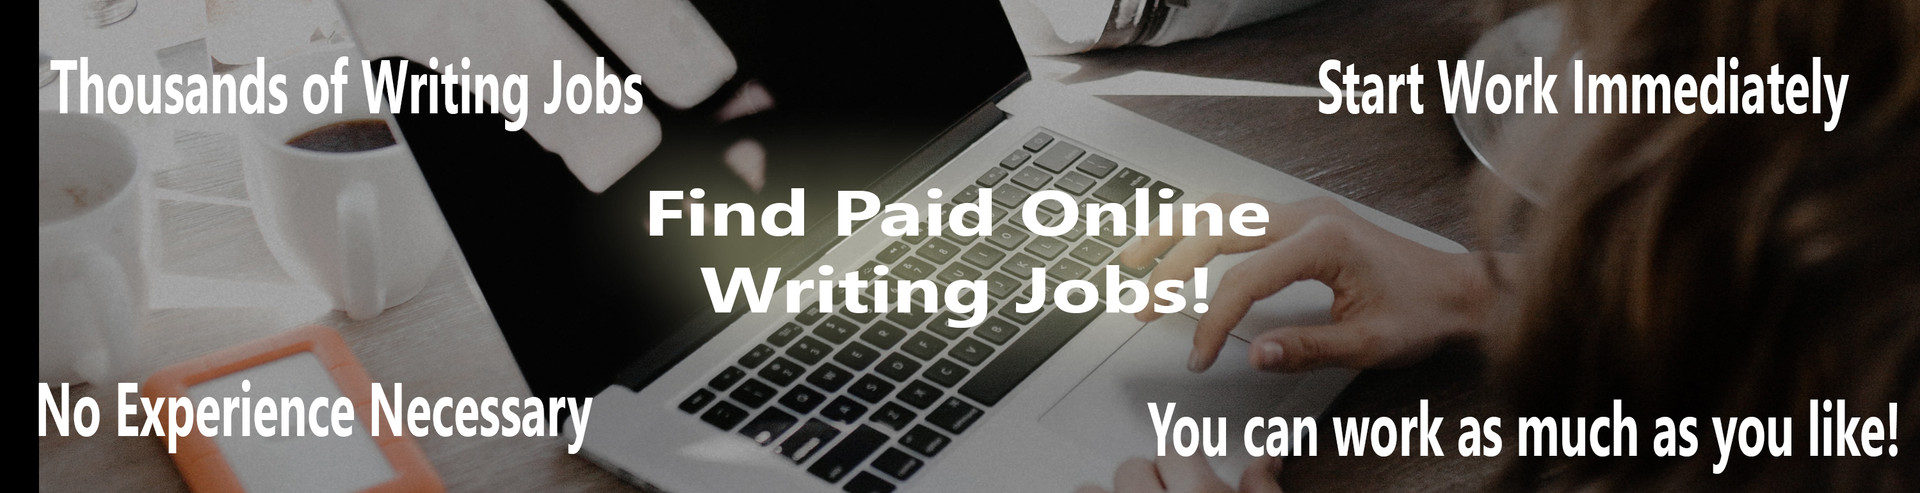 Paid Online Writing Jobs